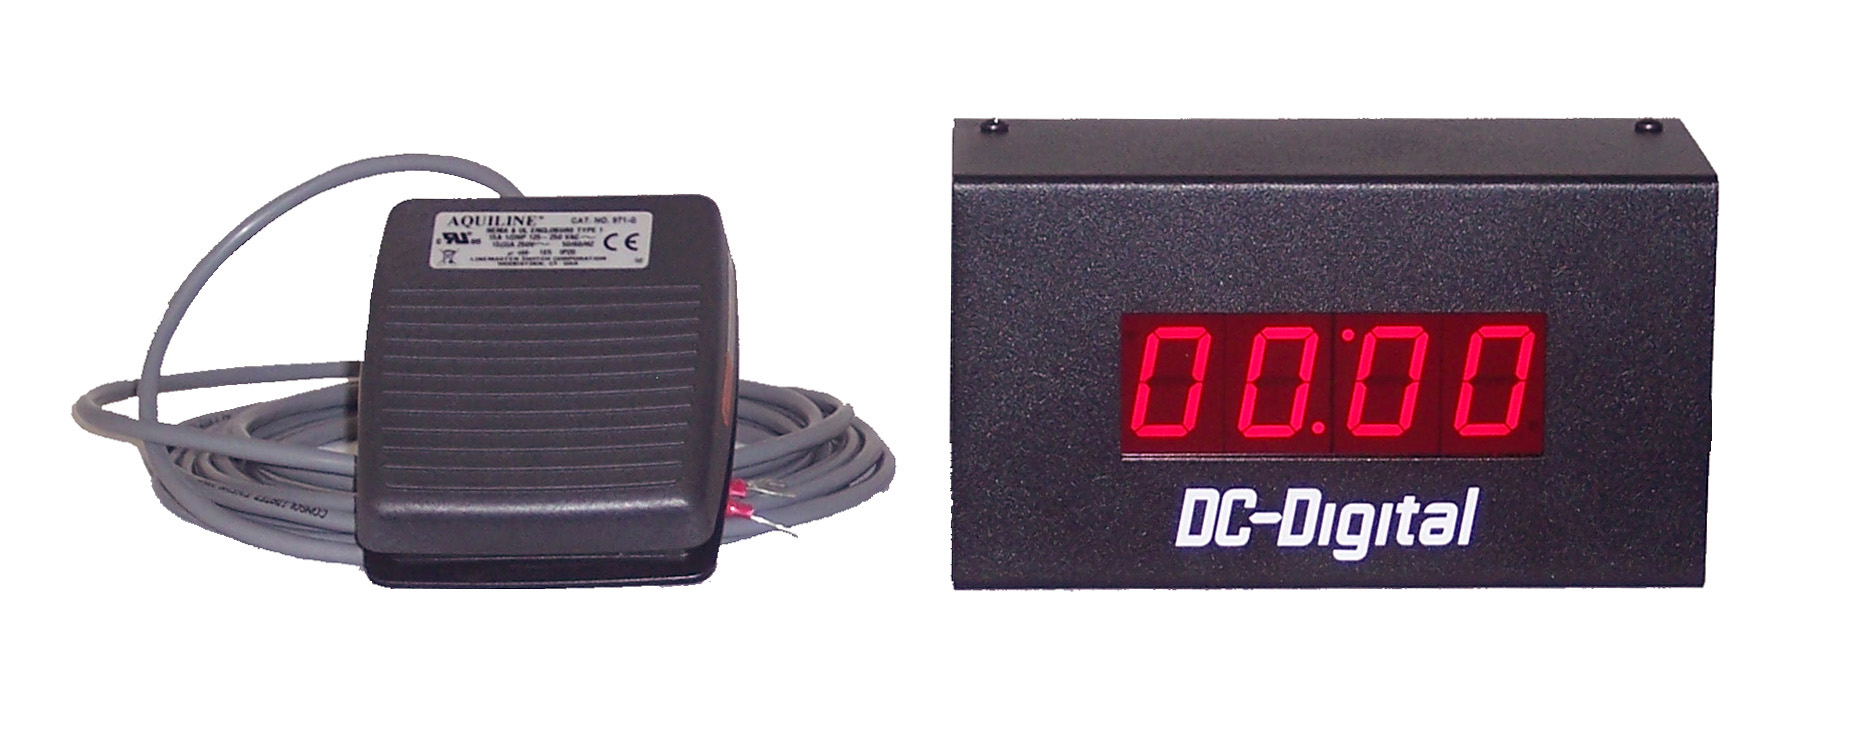 DC-10T-UP-Foot Footswitch Activated Count Up timer 1 Inch Digits t use as a handwashing timer